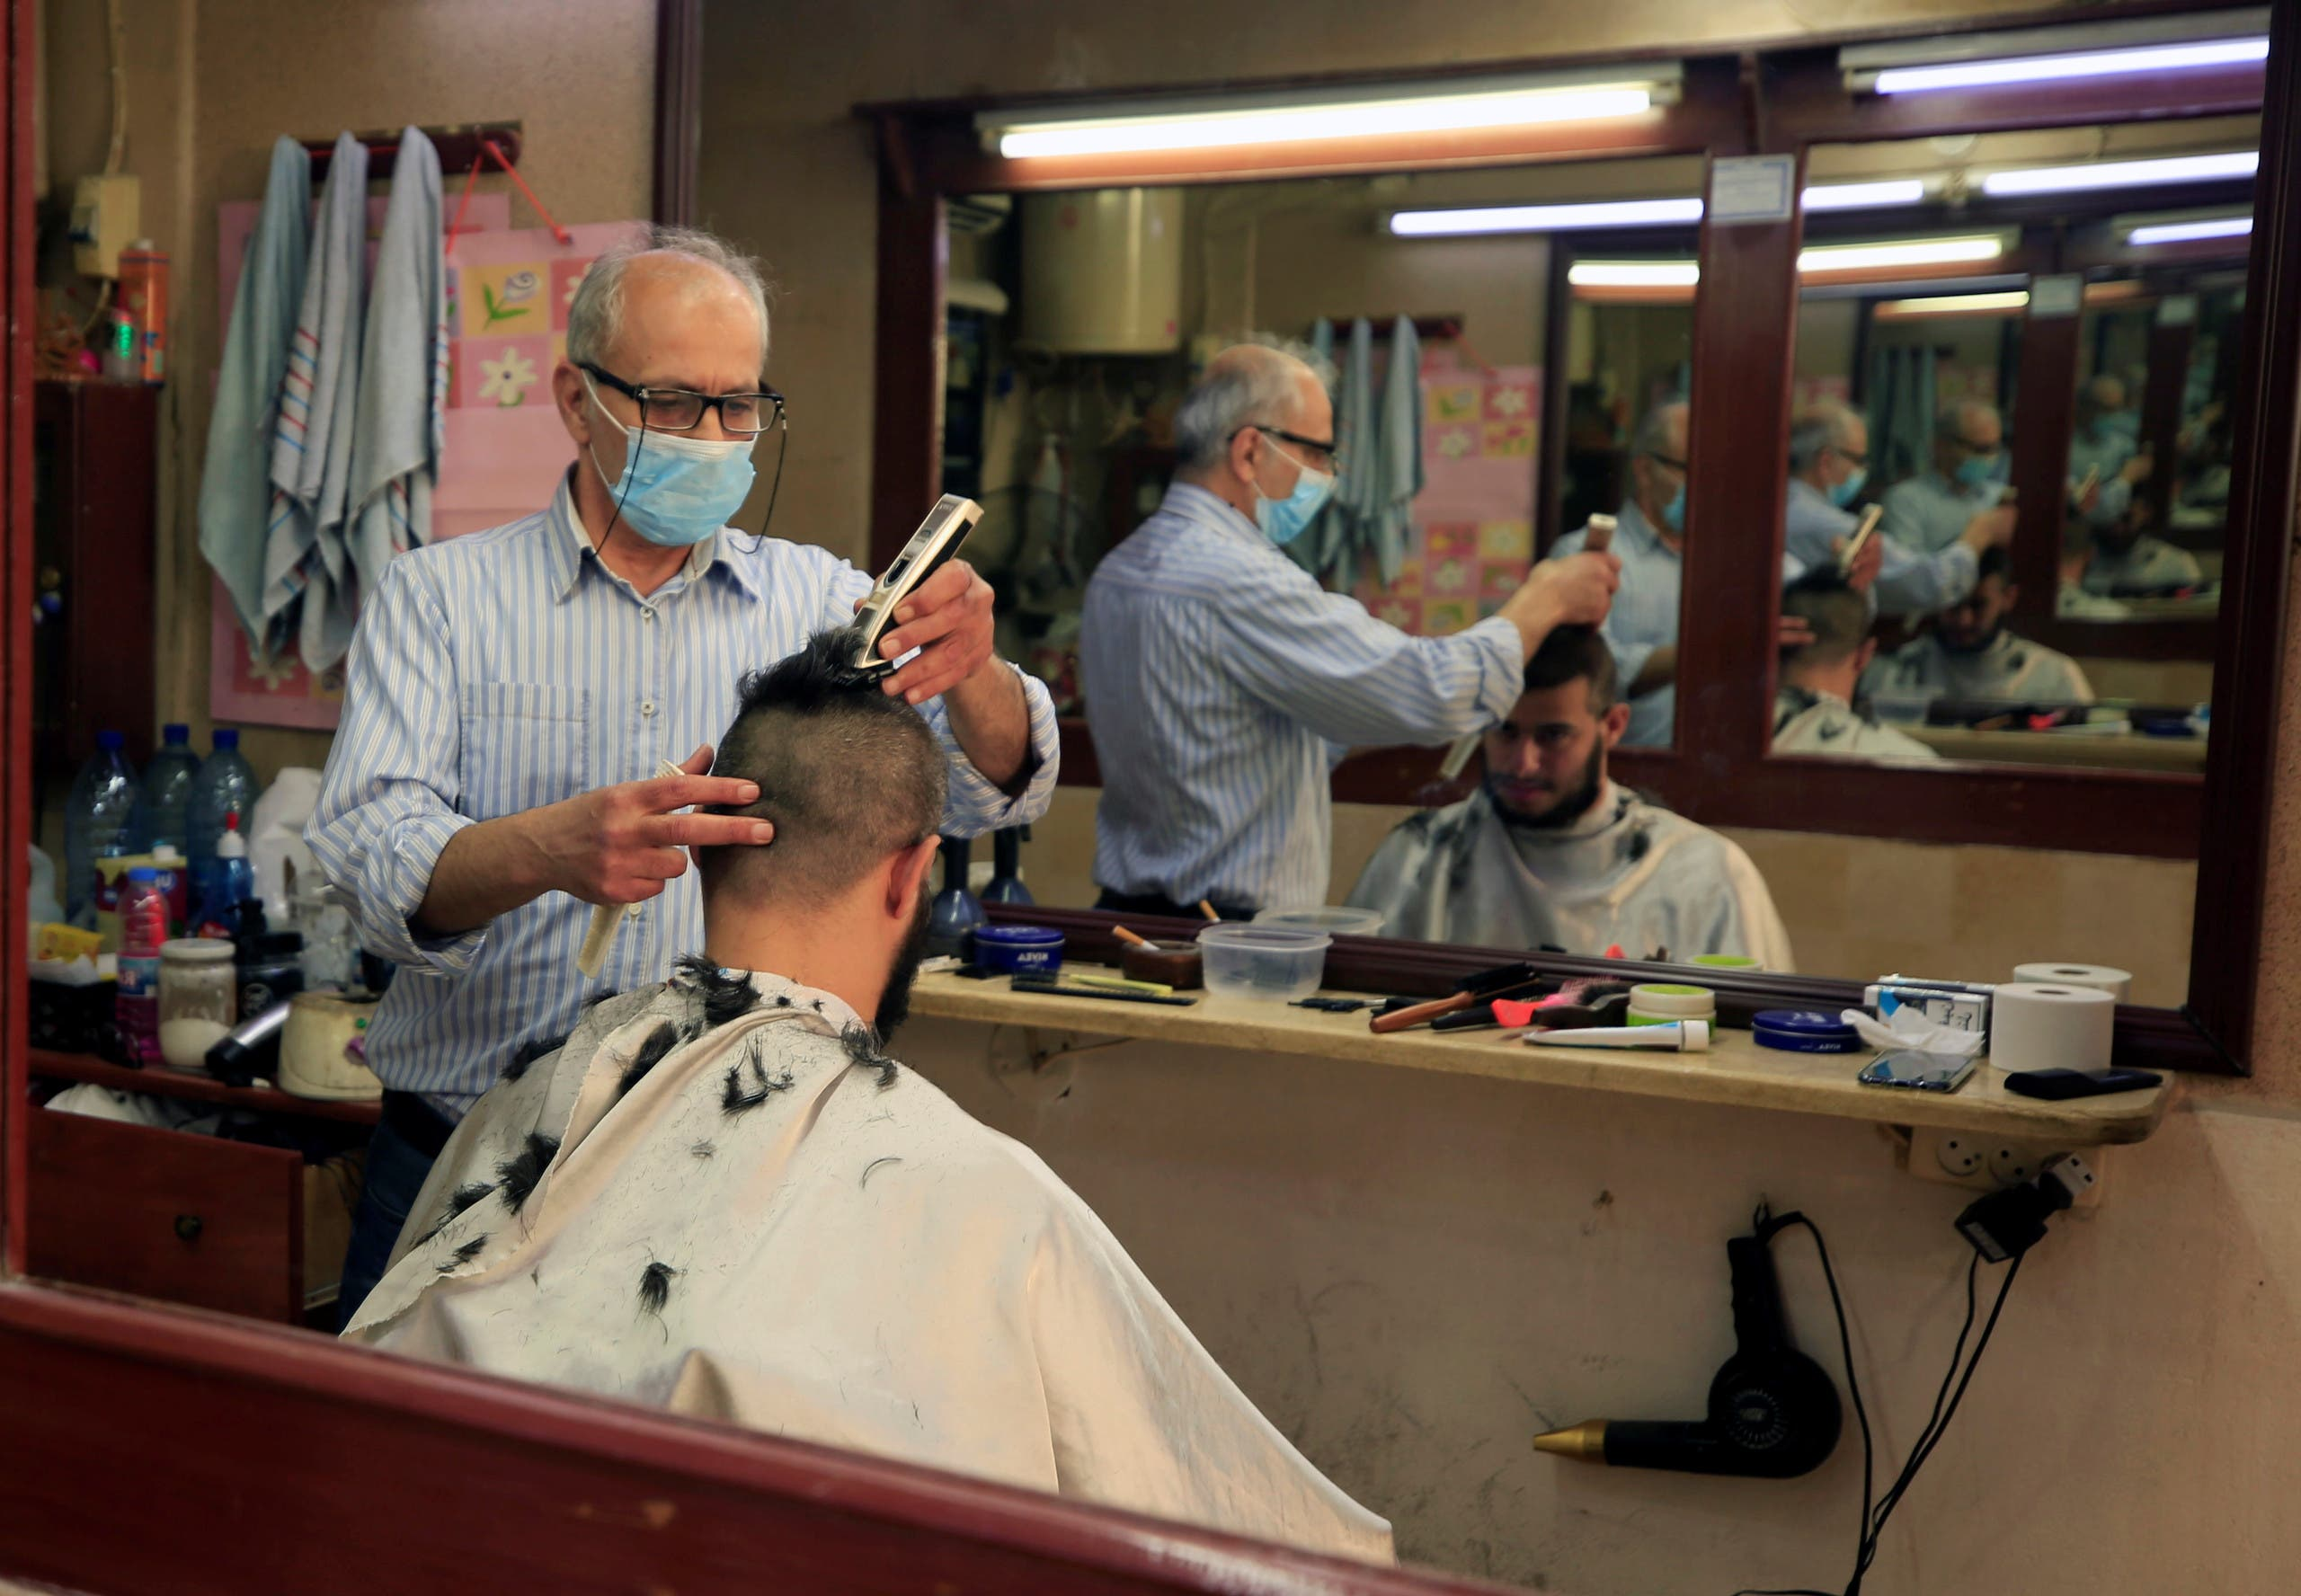 A barber wearing a protective mask shaves a customer's head at his shop, during a countrywide lockdown to combat the spread of the coronavirus disease (COVID-19) in Sidon, Lebanon April 23, 2020. REUTERS/Ali Hashisho